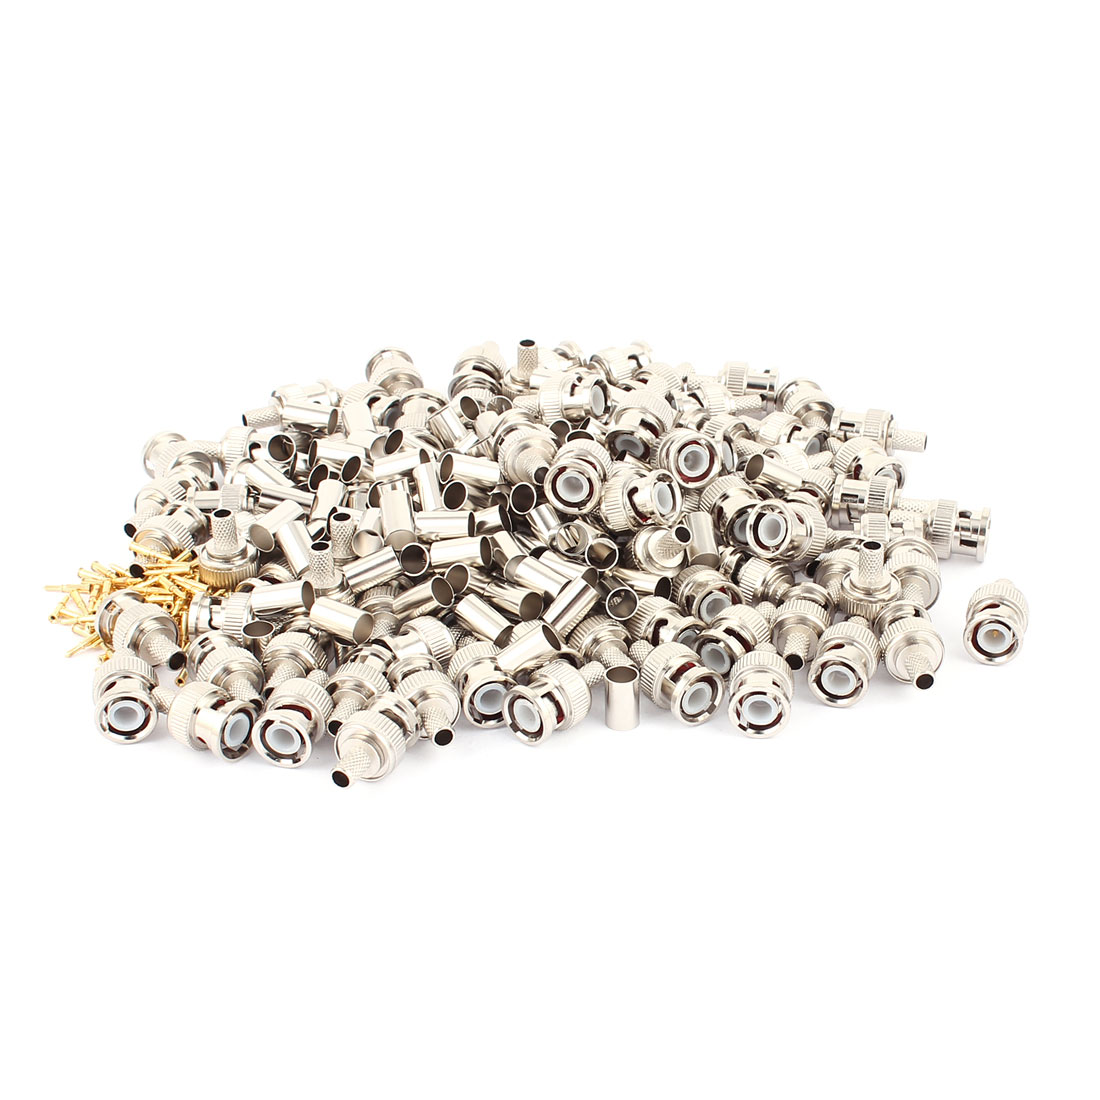 100Pcs BNC Female Nut Straight Coax Coaxial Adapter RF Connector Silver Tone